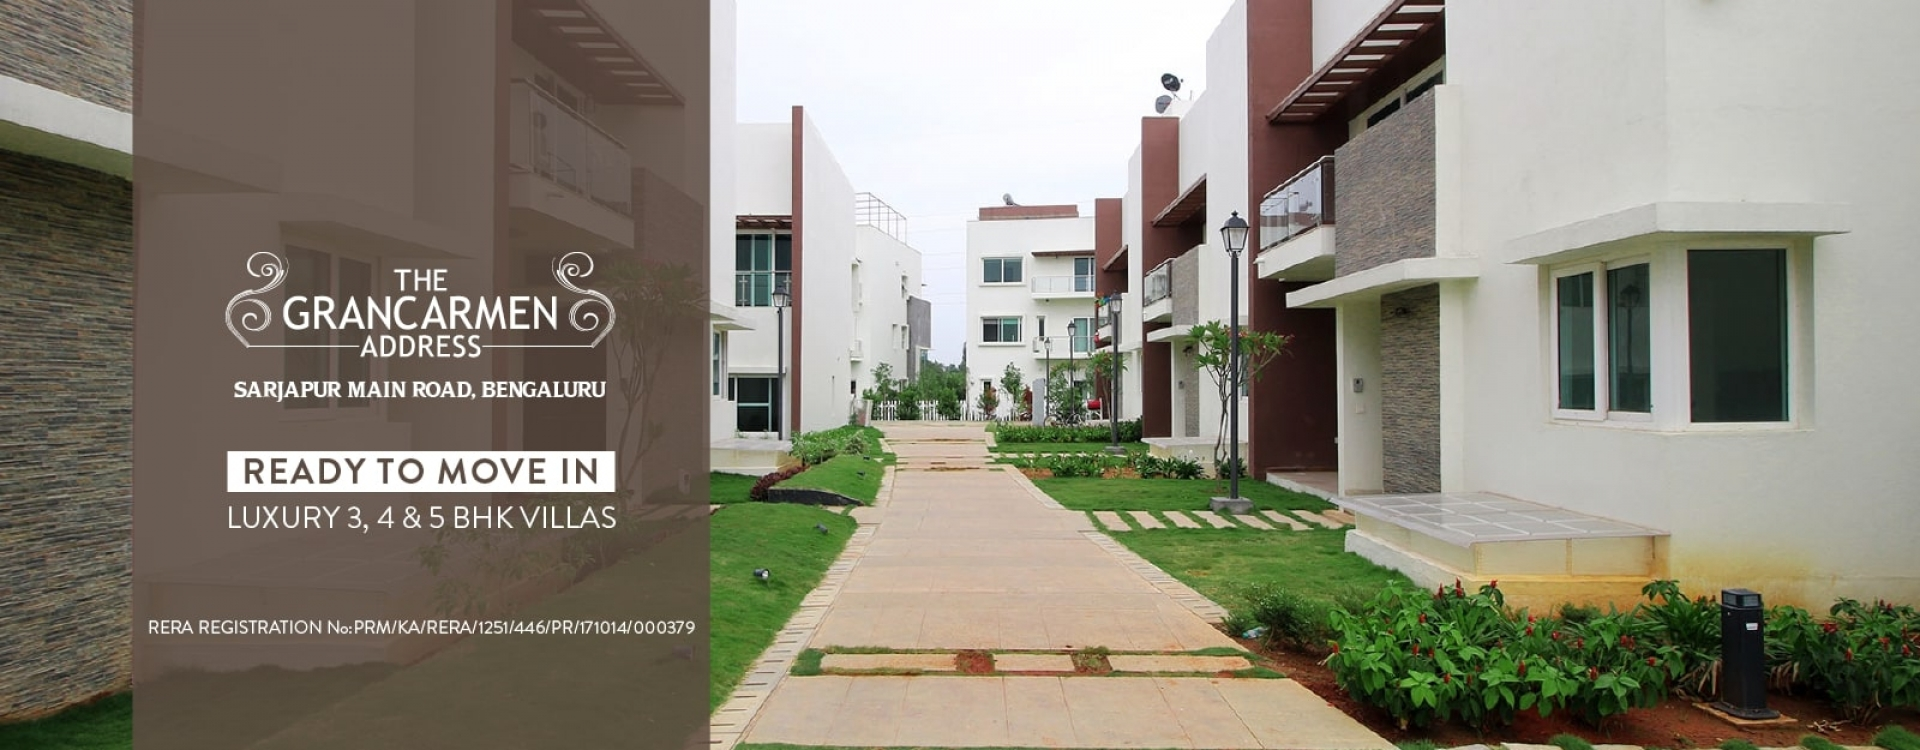 TGCA_Home-Page-Banner_2